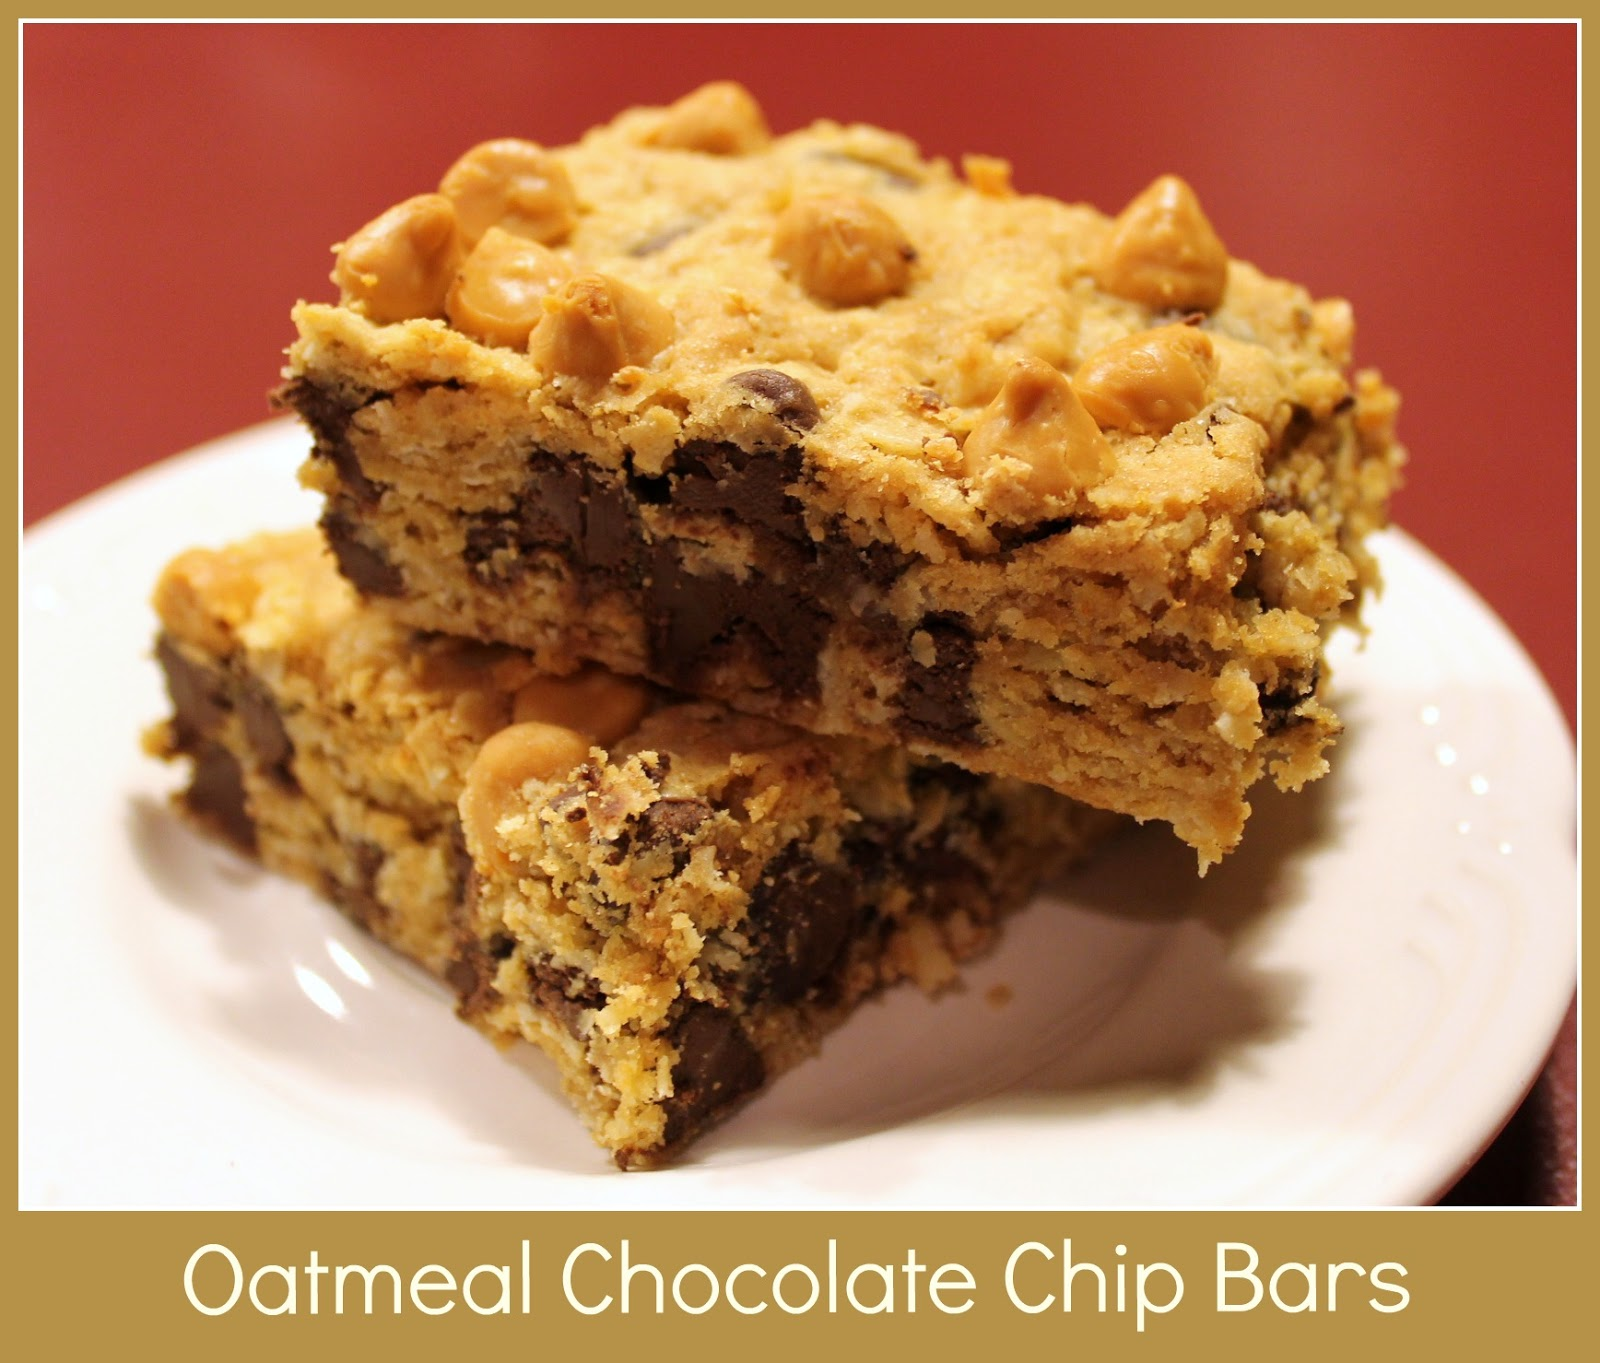 Imitation by Design: Oatmeal Chocolate Chip Cookie Bars